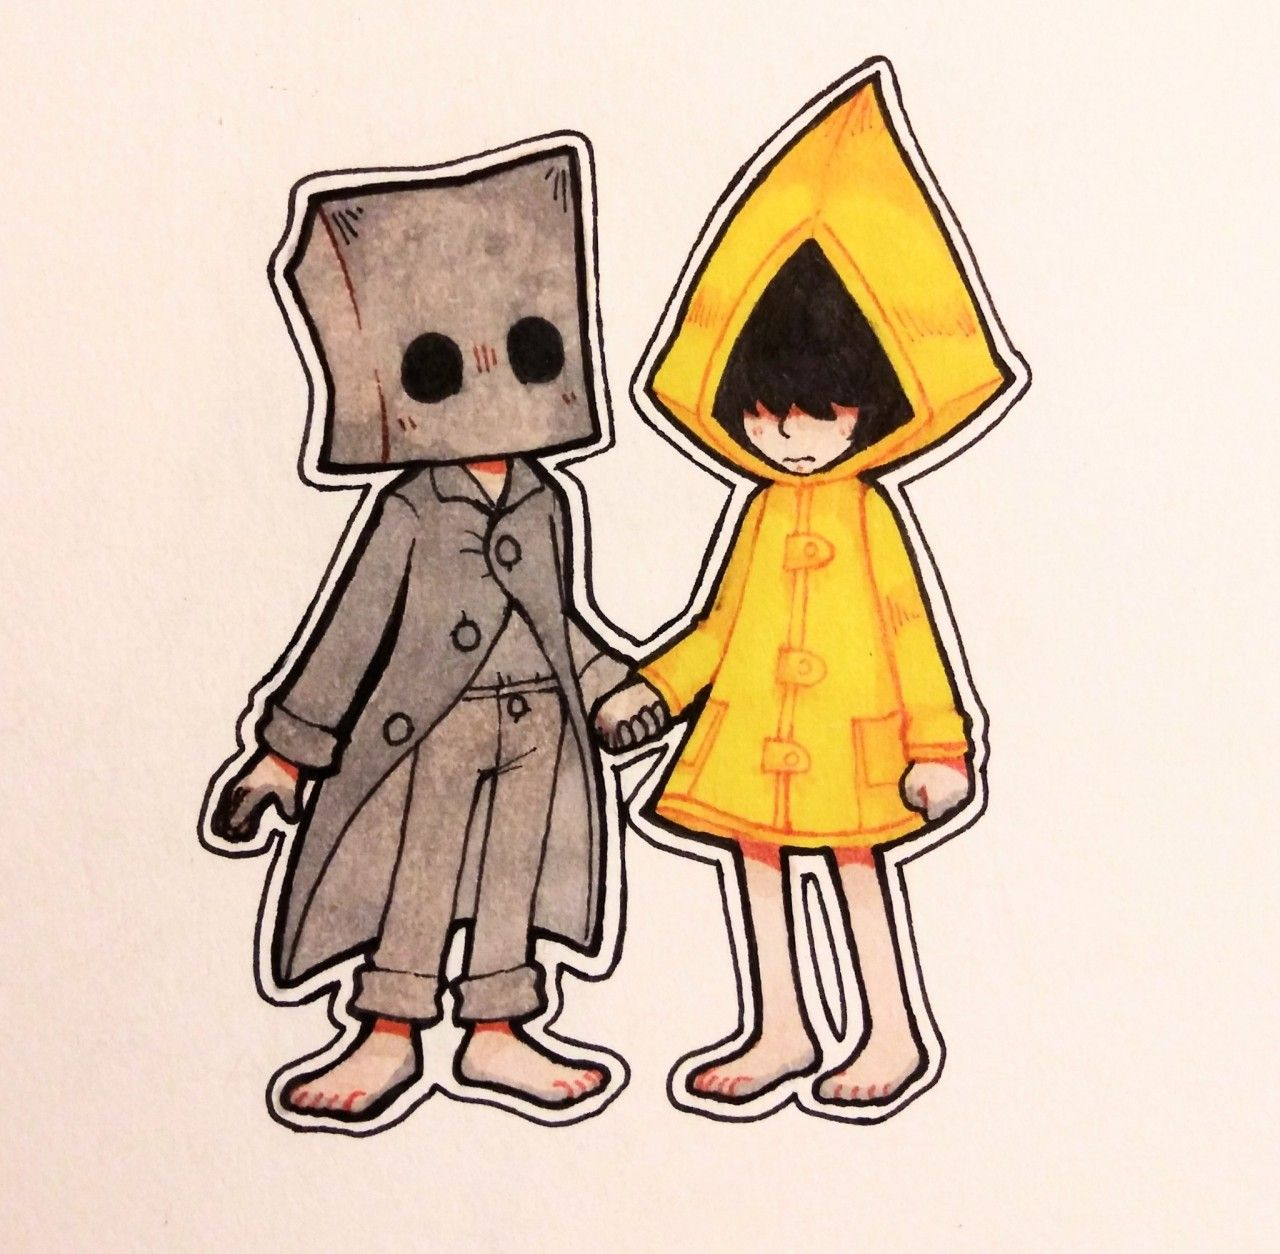 #little-nightmares-2 on Tumblr